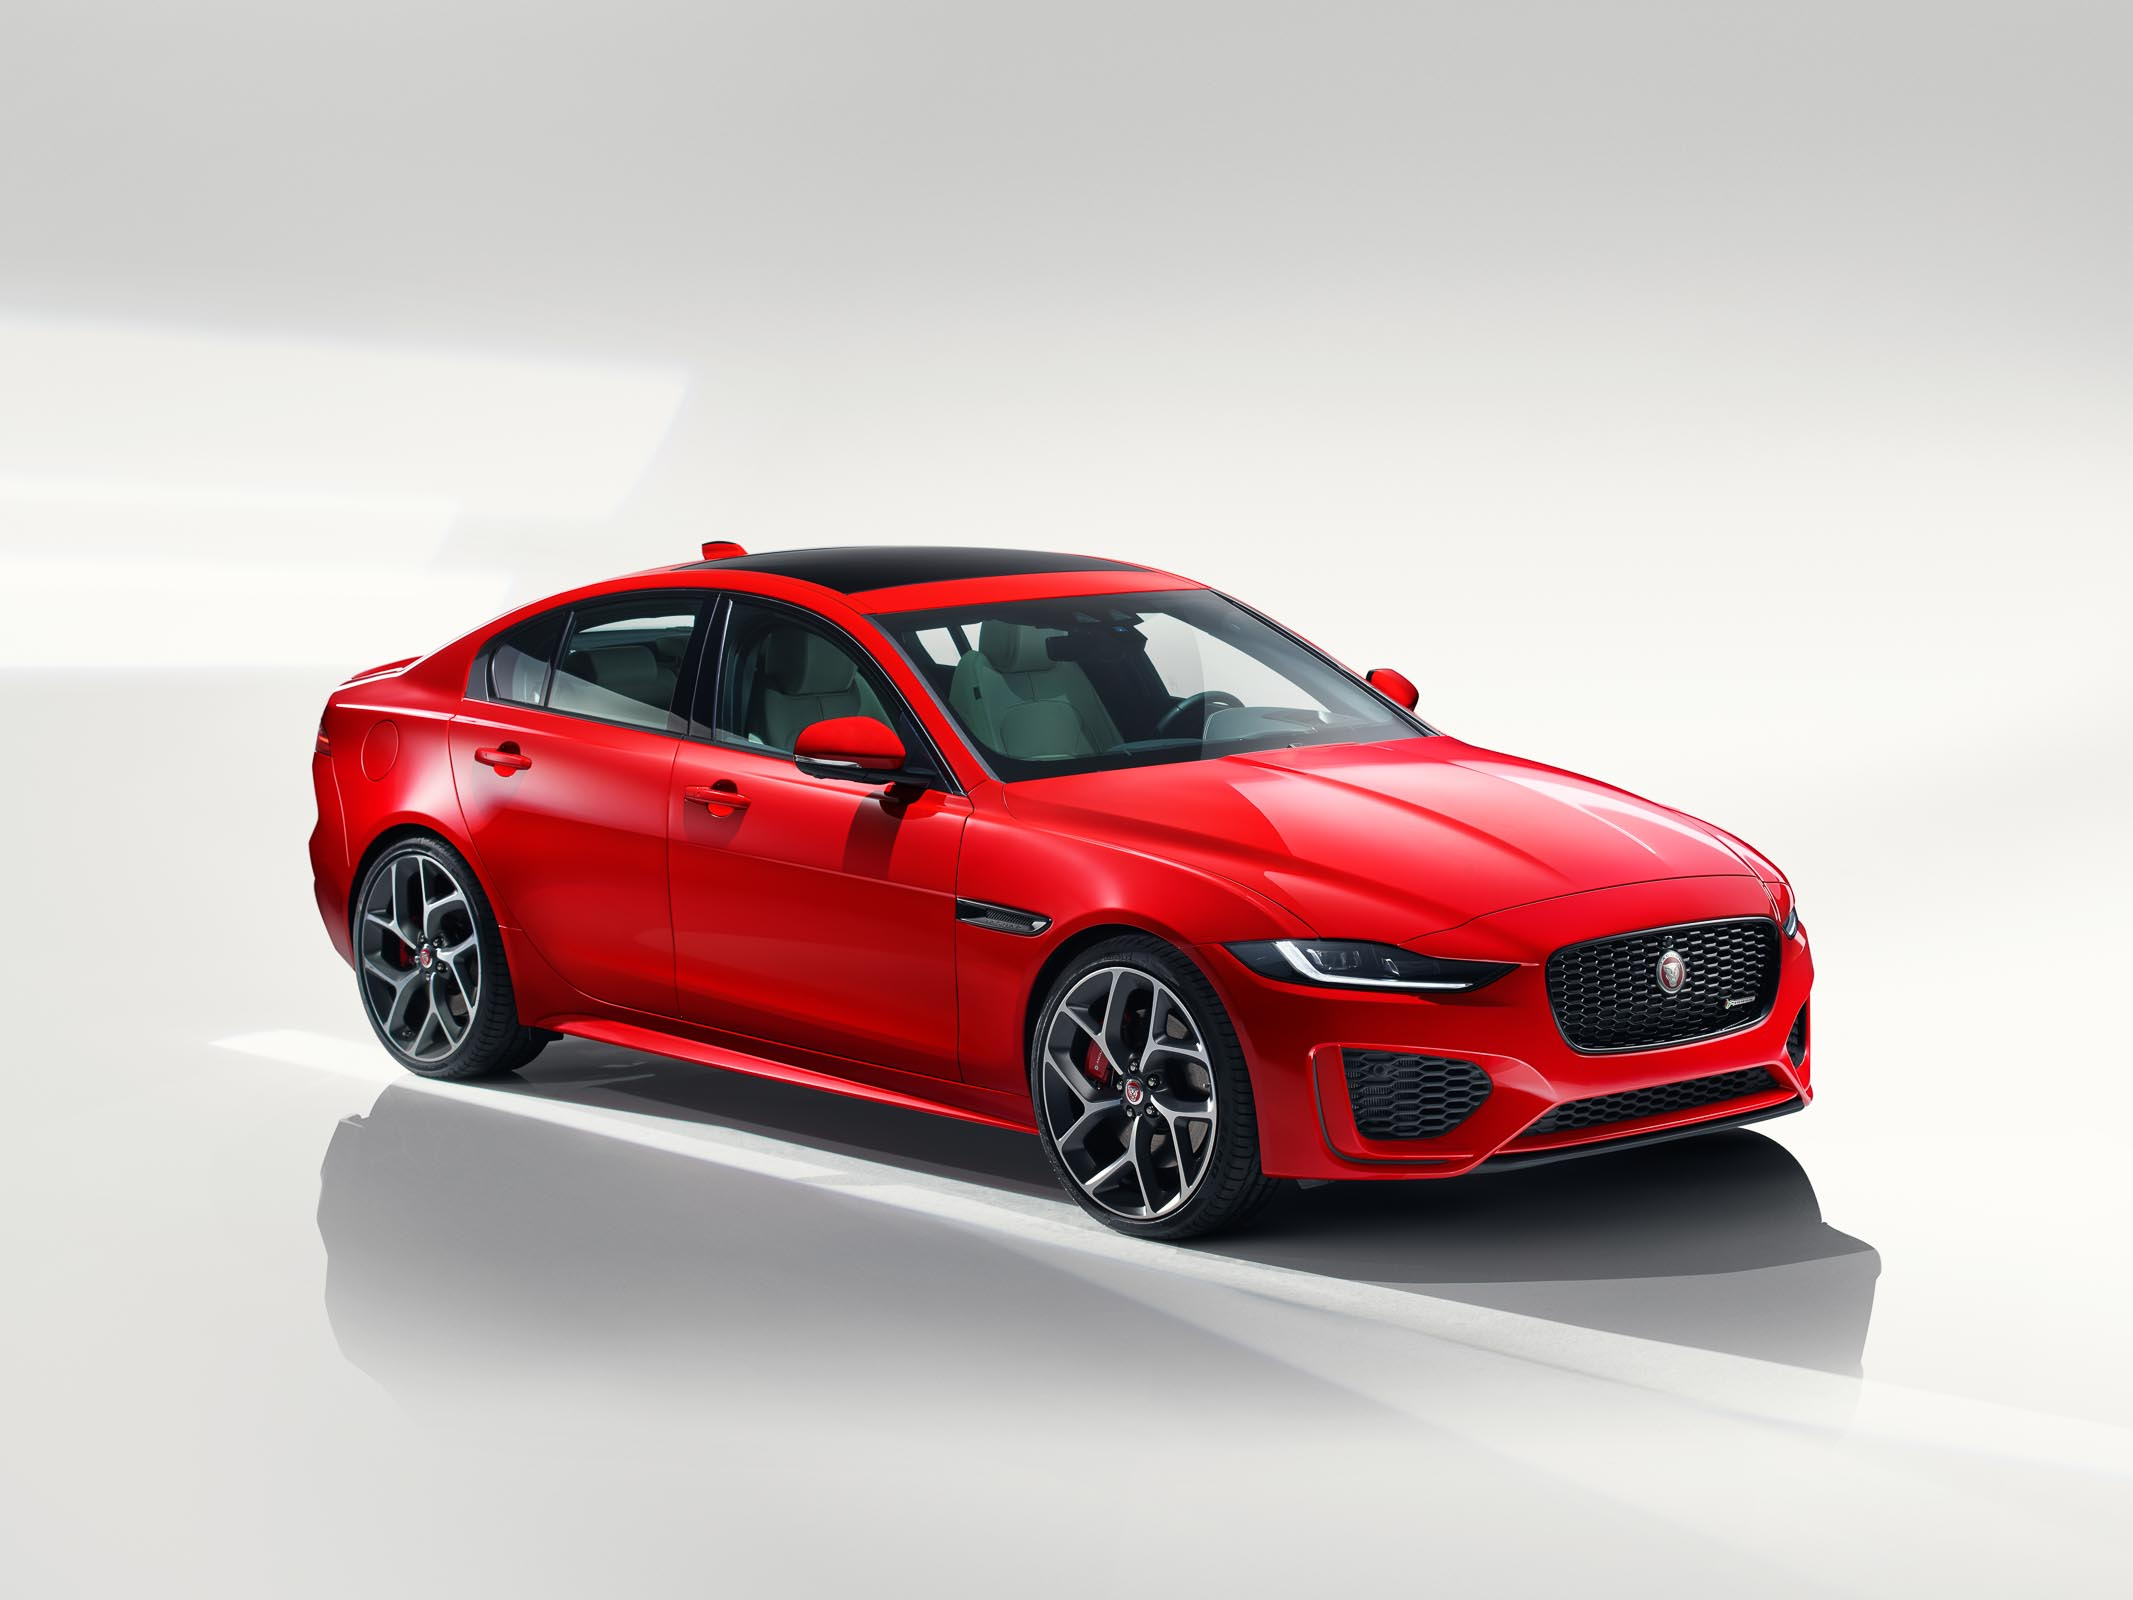 Jaguar_XE_Caldera_Red_RDynamic_front3_4_2